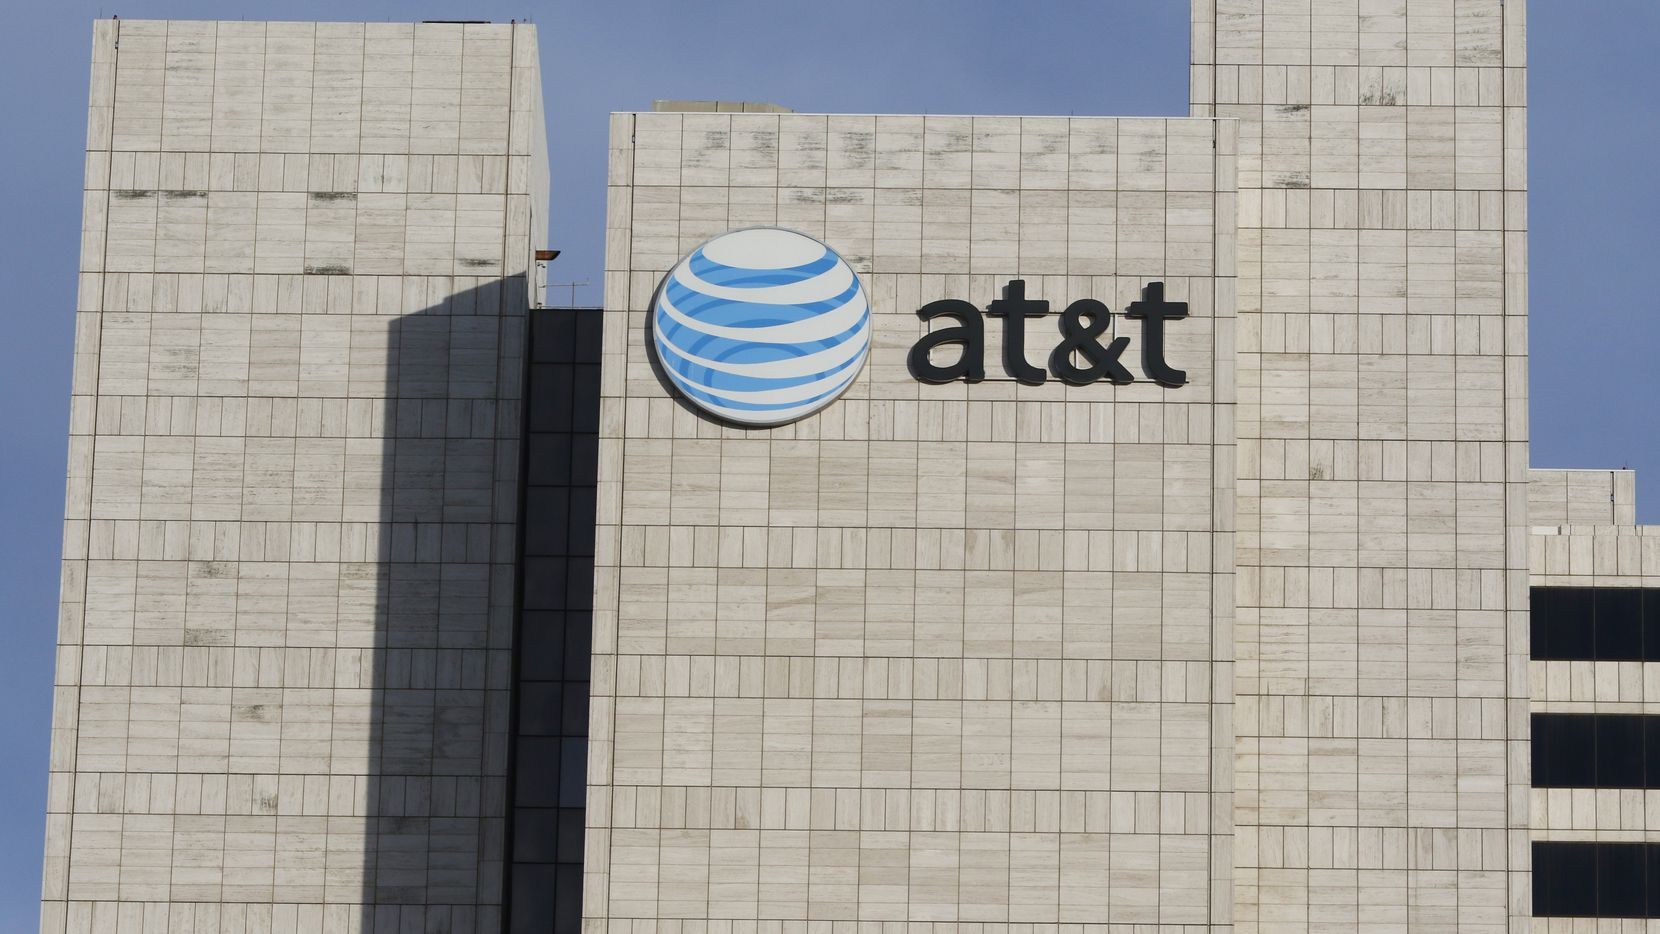 AT&T corporate headquarters in downtown Dallas on Friday, January 15, 2016. (David Woo/Staff Photographer)